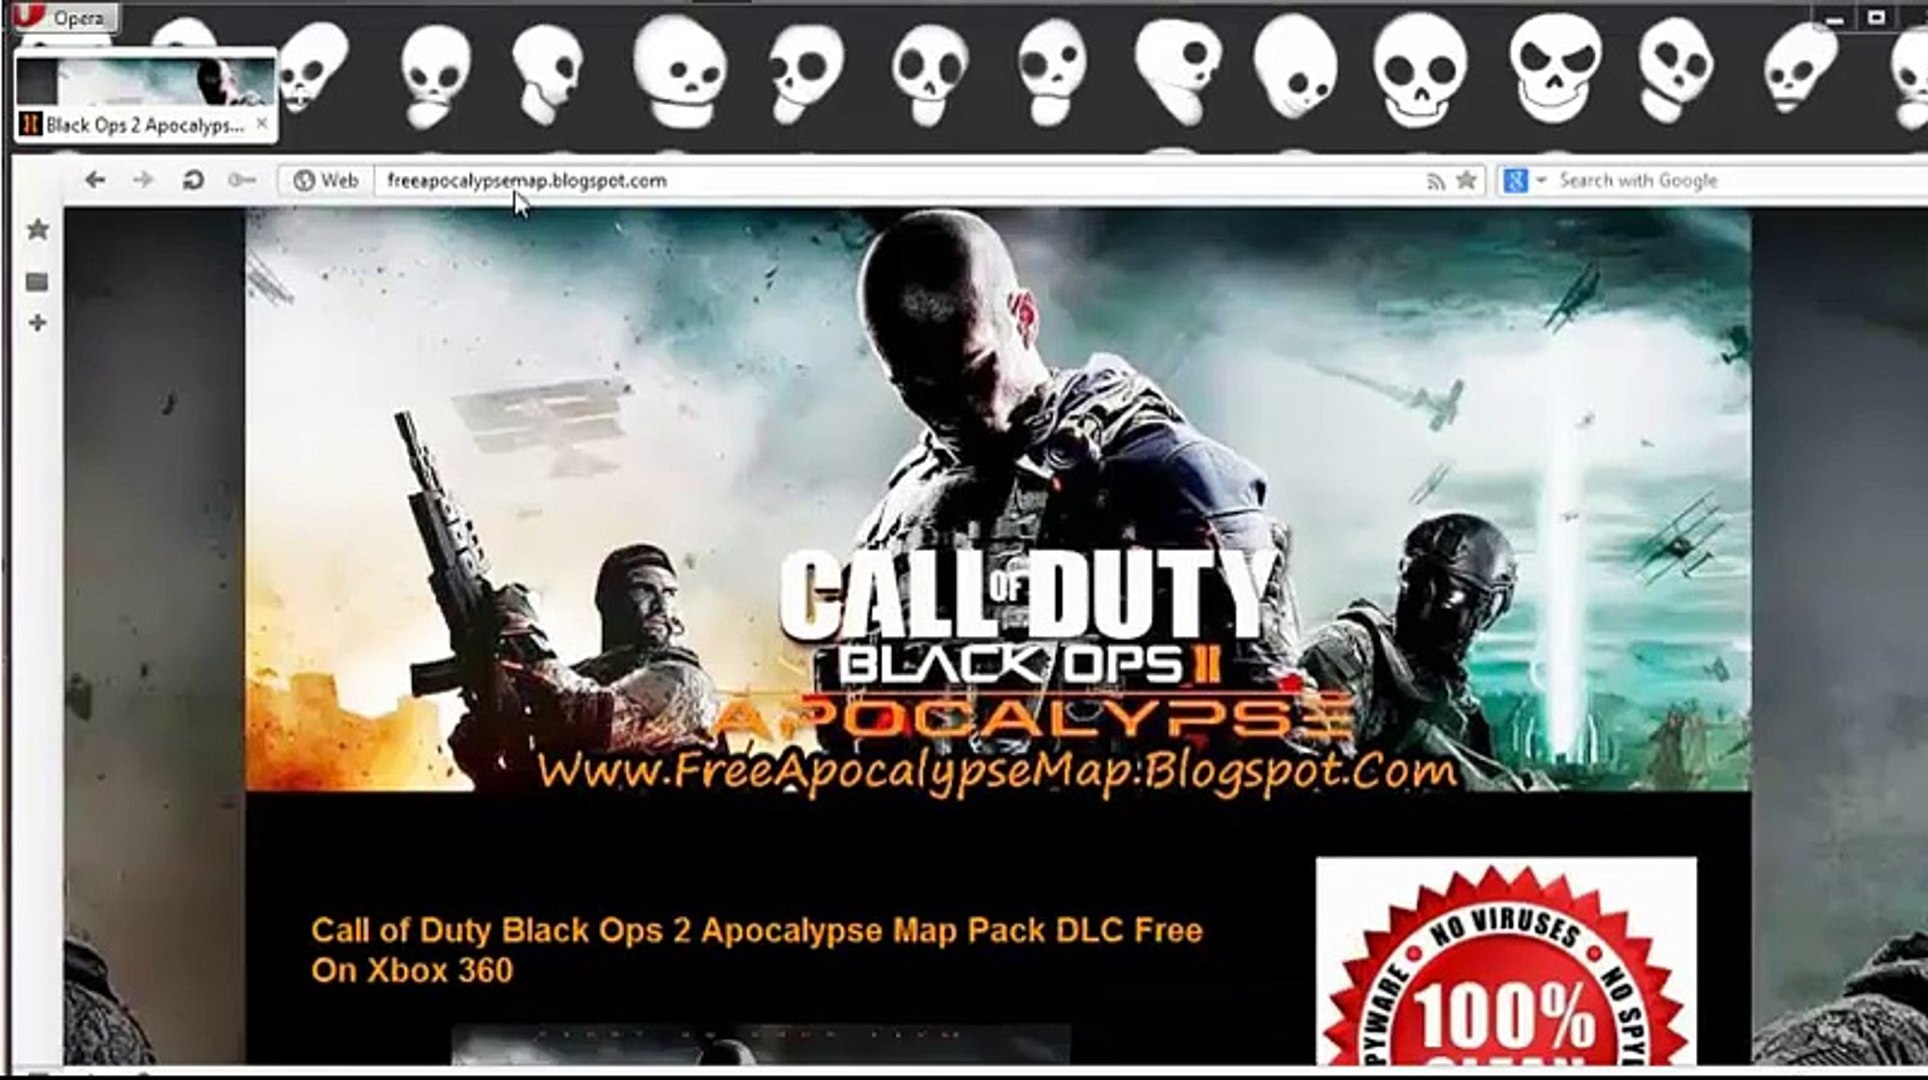 call of duty ghosts maps, black ops 1 map packs, all black ops map packs, call duty black ops 3, call of duty blackops 2, call of duty mw3 map packs, call of duty advanced warfare maps, black ops ii map packs, call duty black ops zombies all maps, call of duty bo2 map packs, black ops 2 dlc map packs, call duty ghost multiplayer, call of duty 2 guns, call of duty apocalypse trailer, call of duty 3 zombies maps, bo2 dlc map packs, call of duty all zombie maps, call of duty 2 multiplayer maps, gta map packs, all 4 bo2 map packs, on call of duty black ops 2 map packs